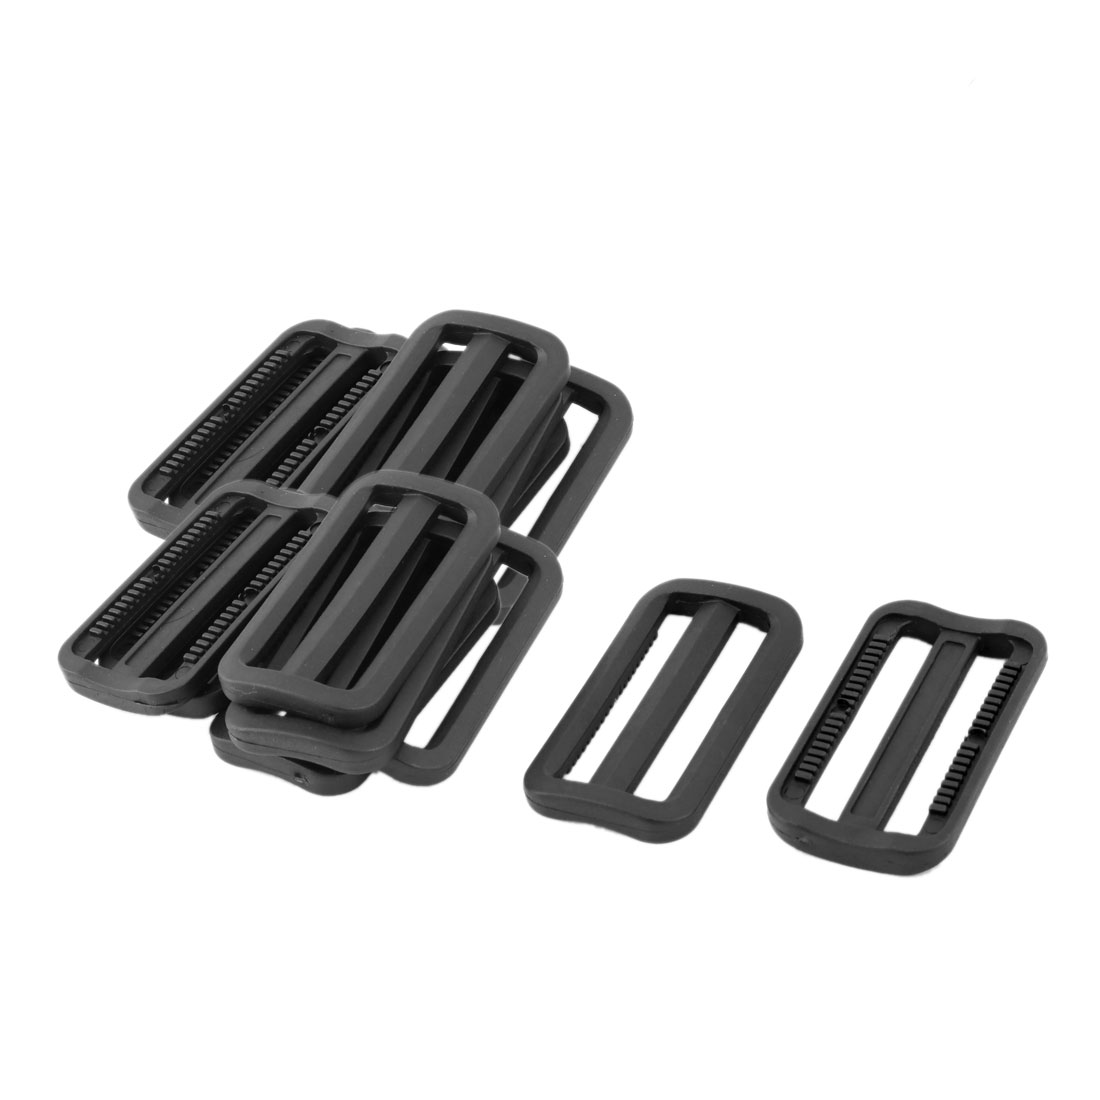 Outdoor Plastic Adjustable Backpack Strap Tri Glide Buckle Black 2.4 Inches Length 18pcs